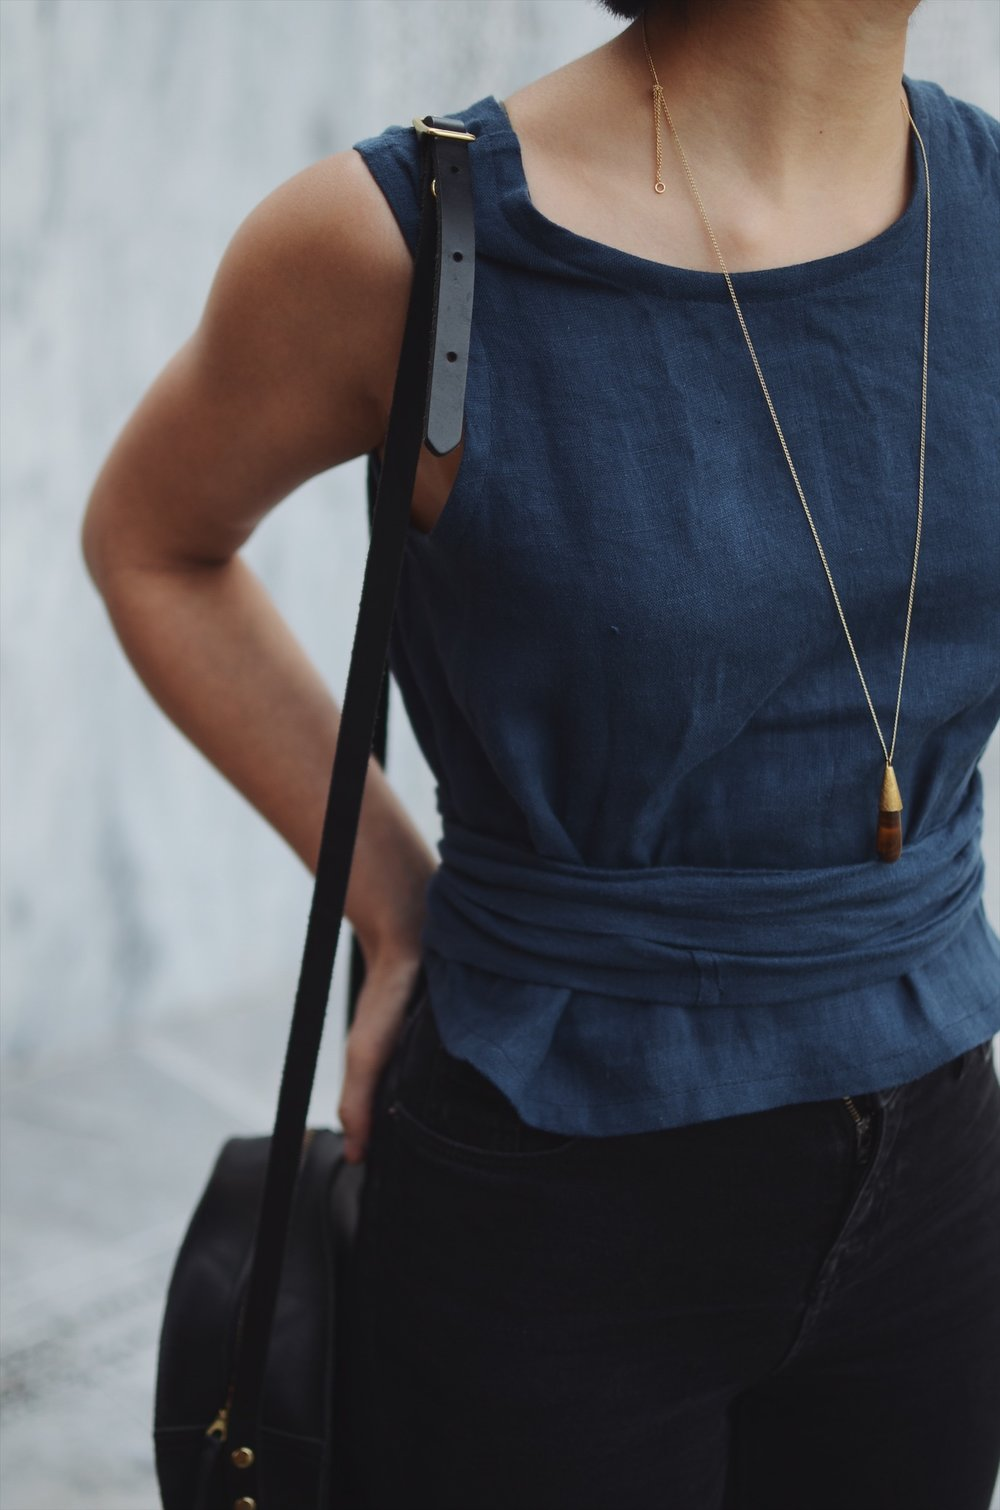 Lauren Winter - Wraparound tank in navy linen